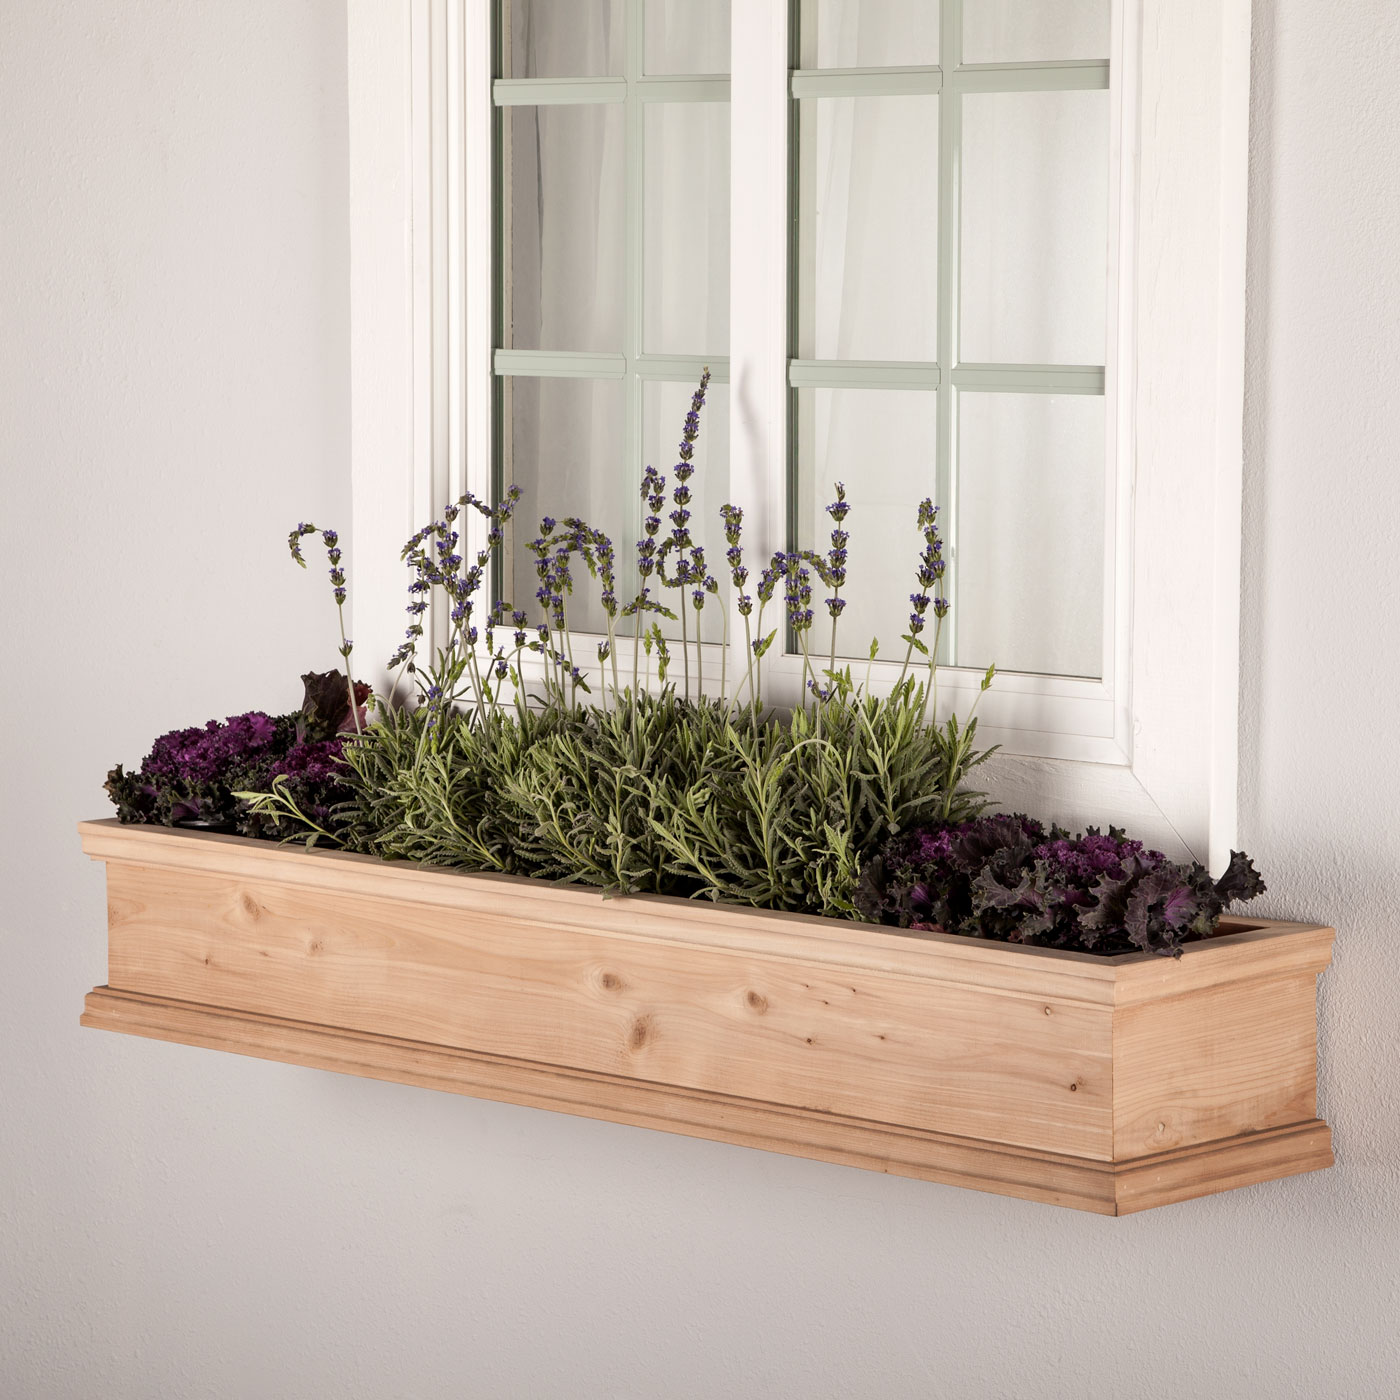 Wooden Window Boxes Wooden Flower Box Wood Window Boxes